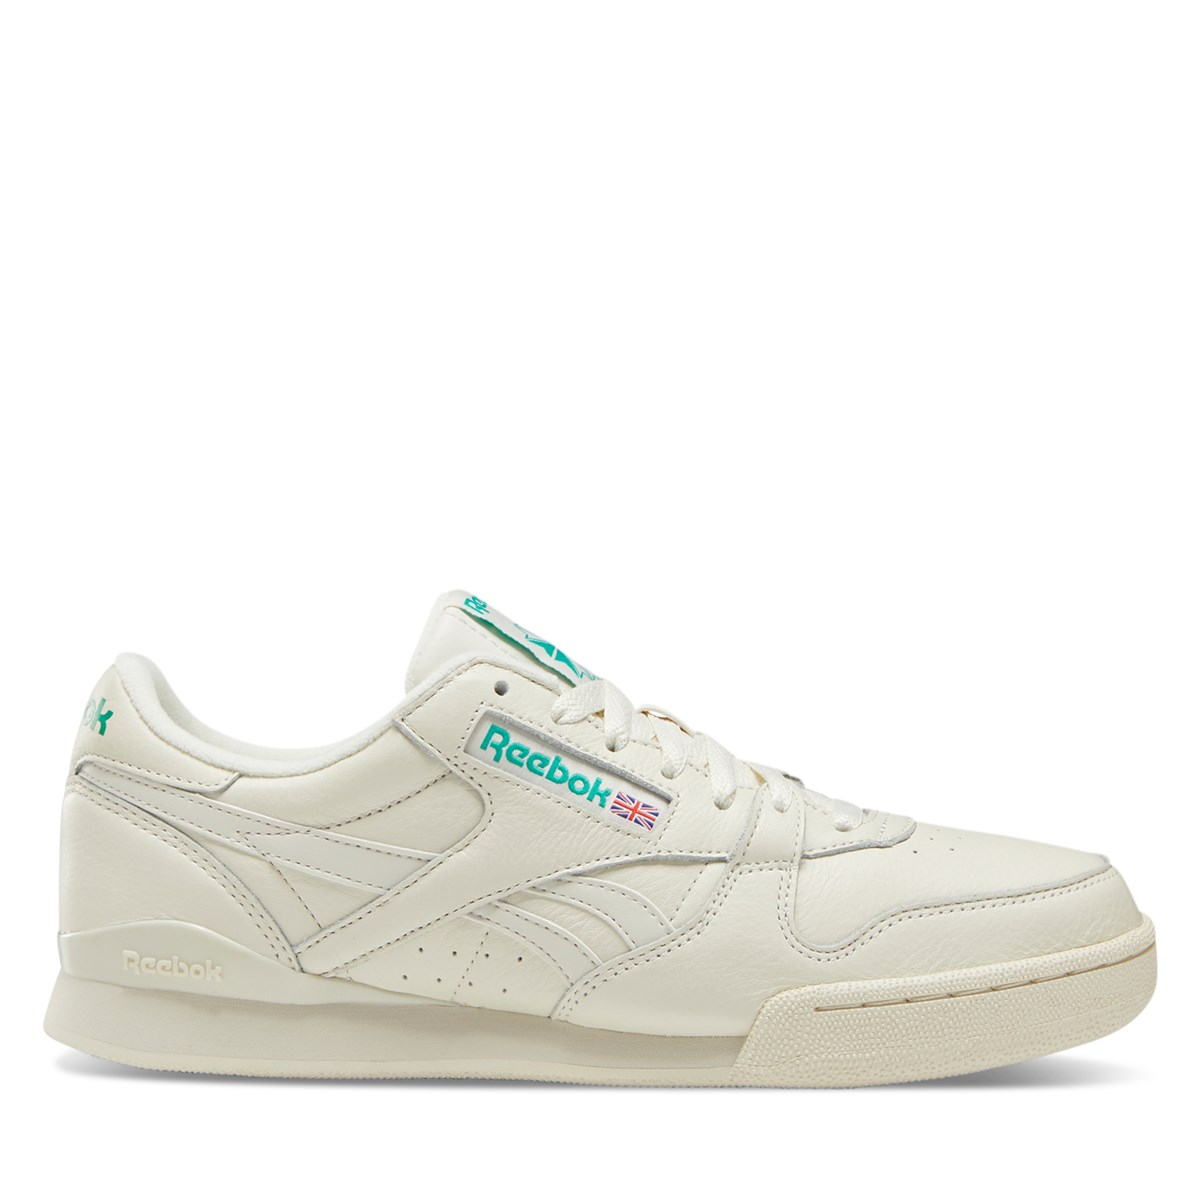 Men's Phase 1 Pro Sneakers in Chalk